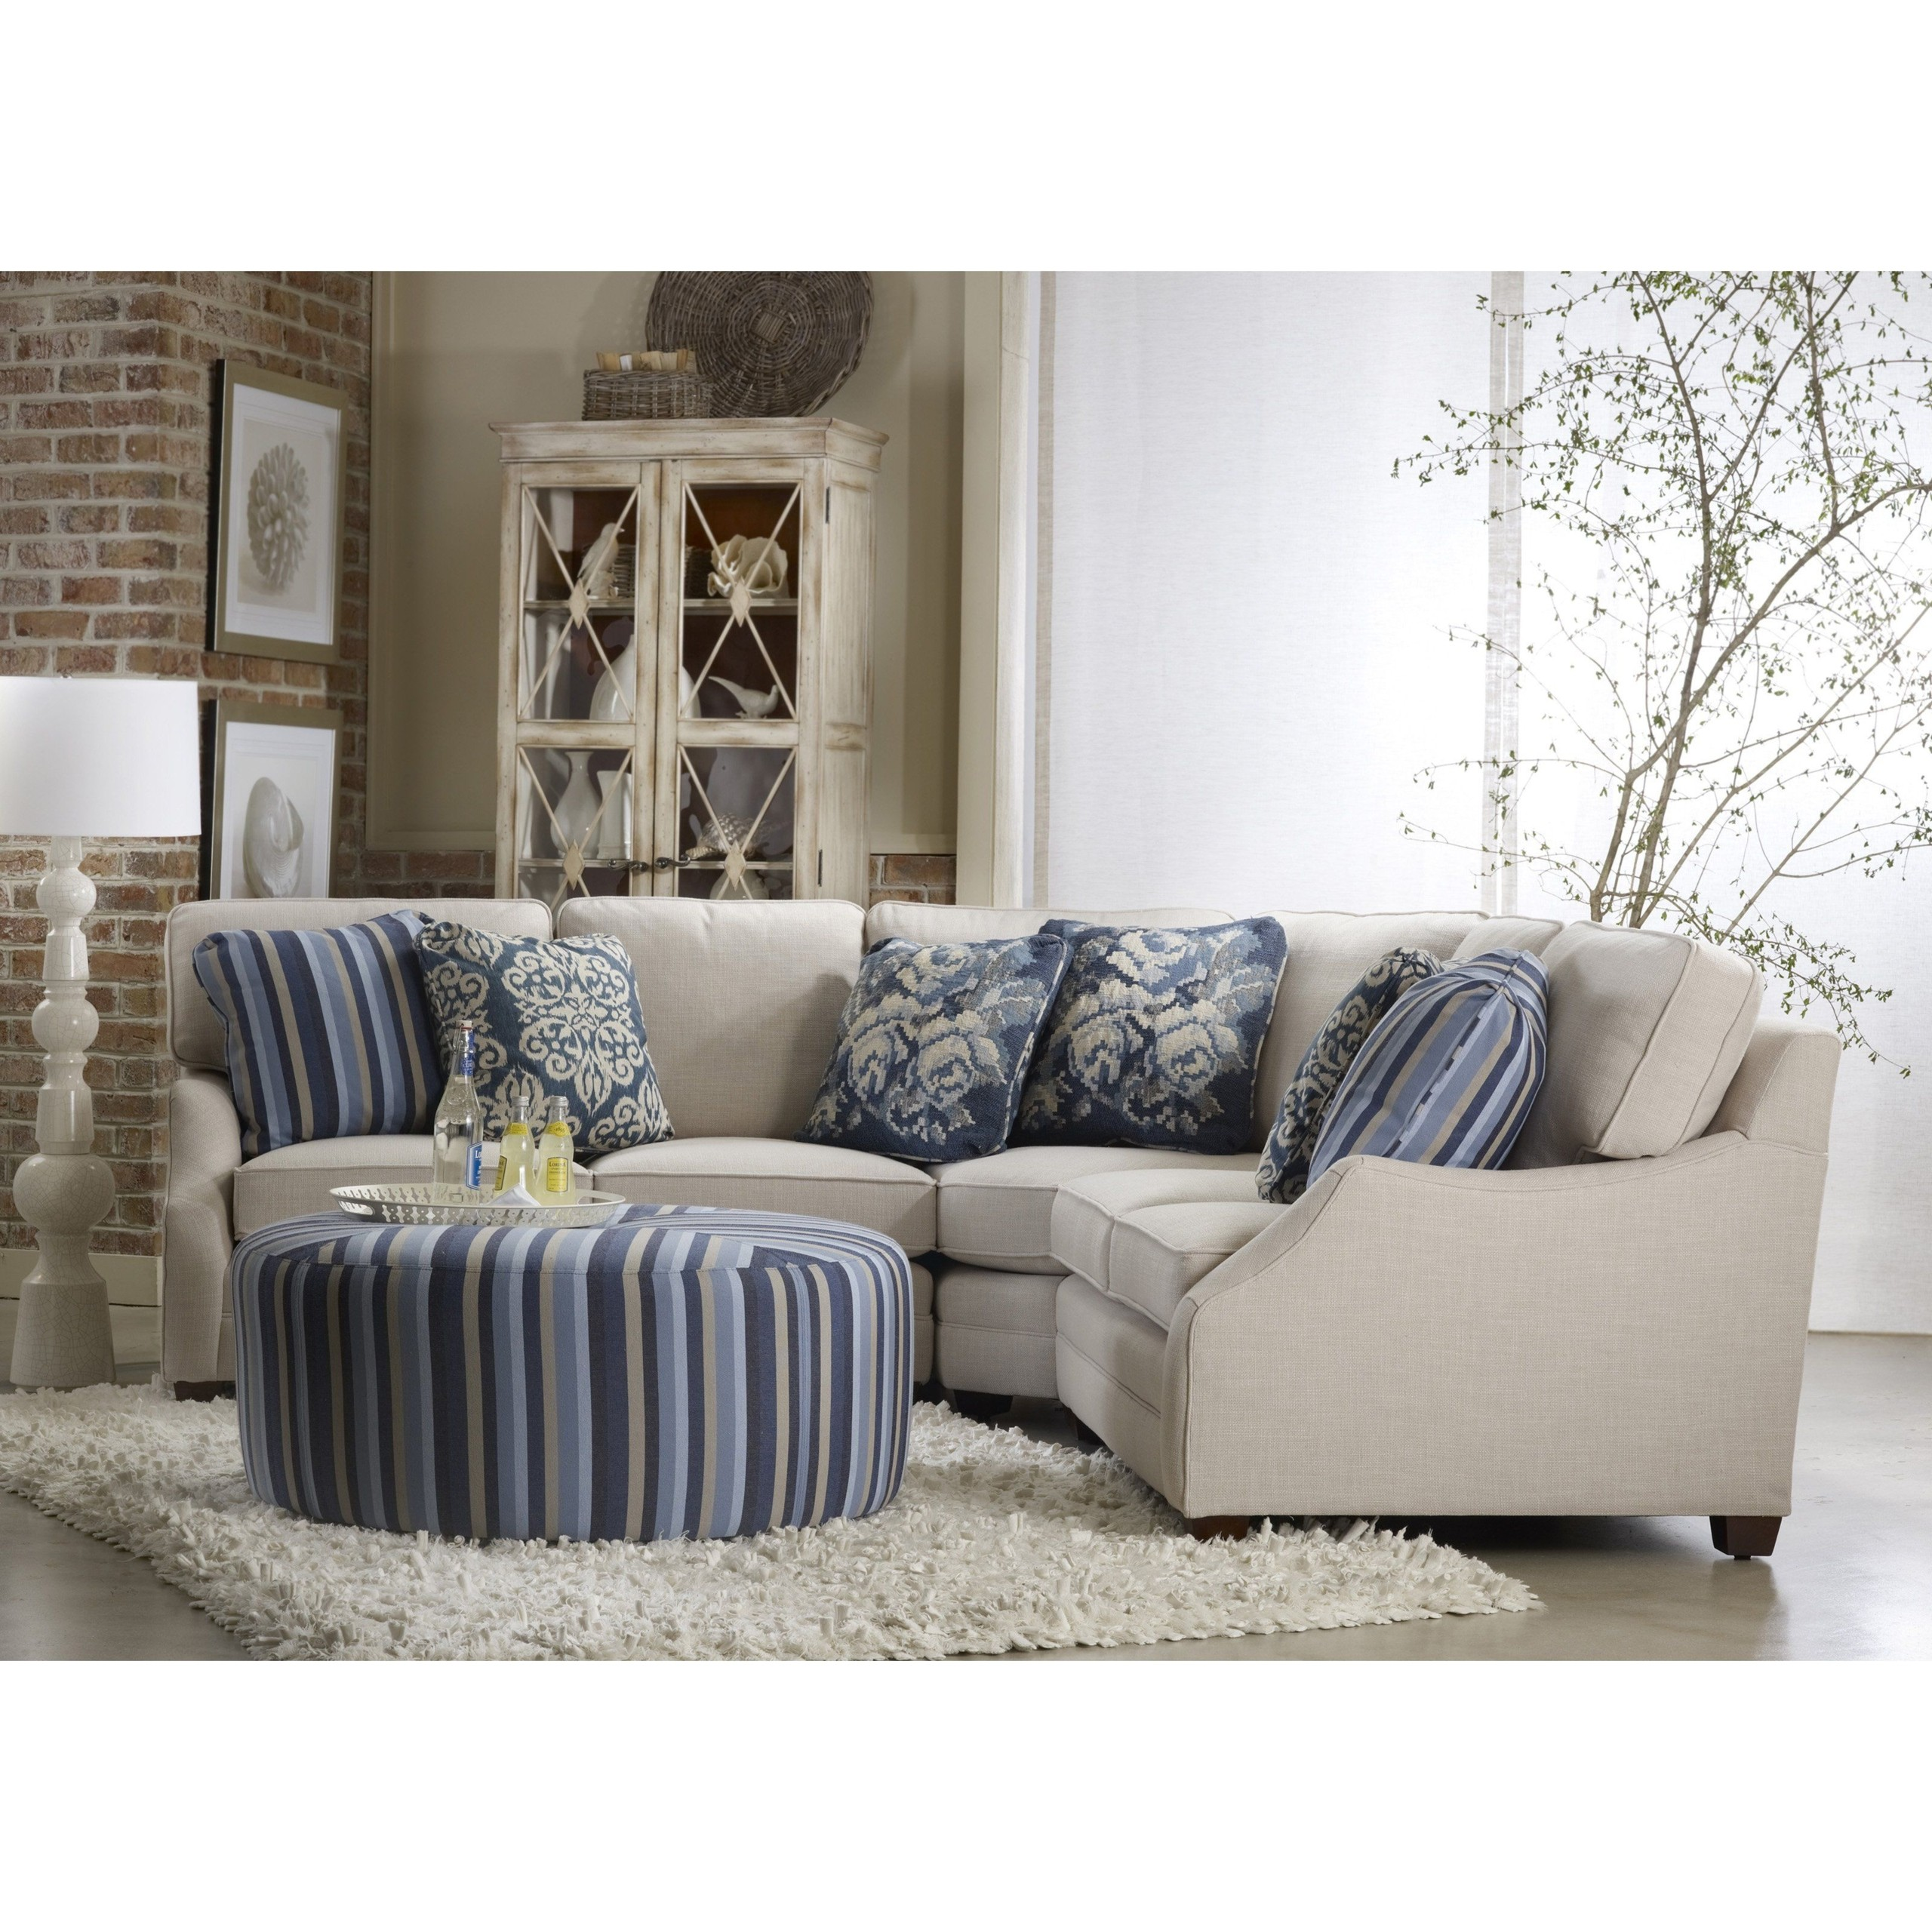 small sectional sofa with recliner ideas on foter rh foter com Sectional Sofa Connectors Hardware Cheap Sectional Sofas Under 200